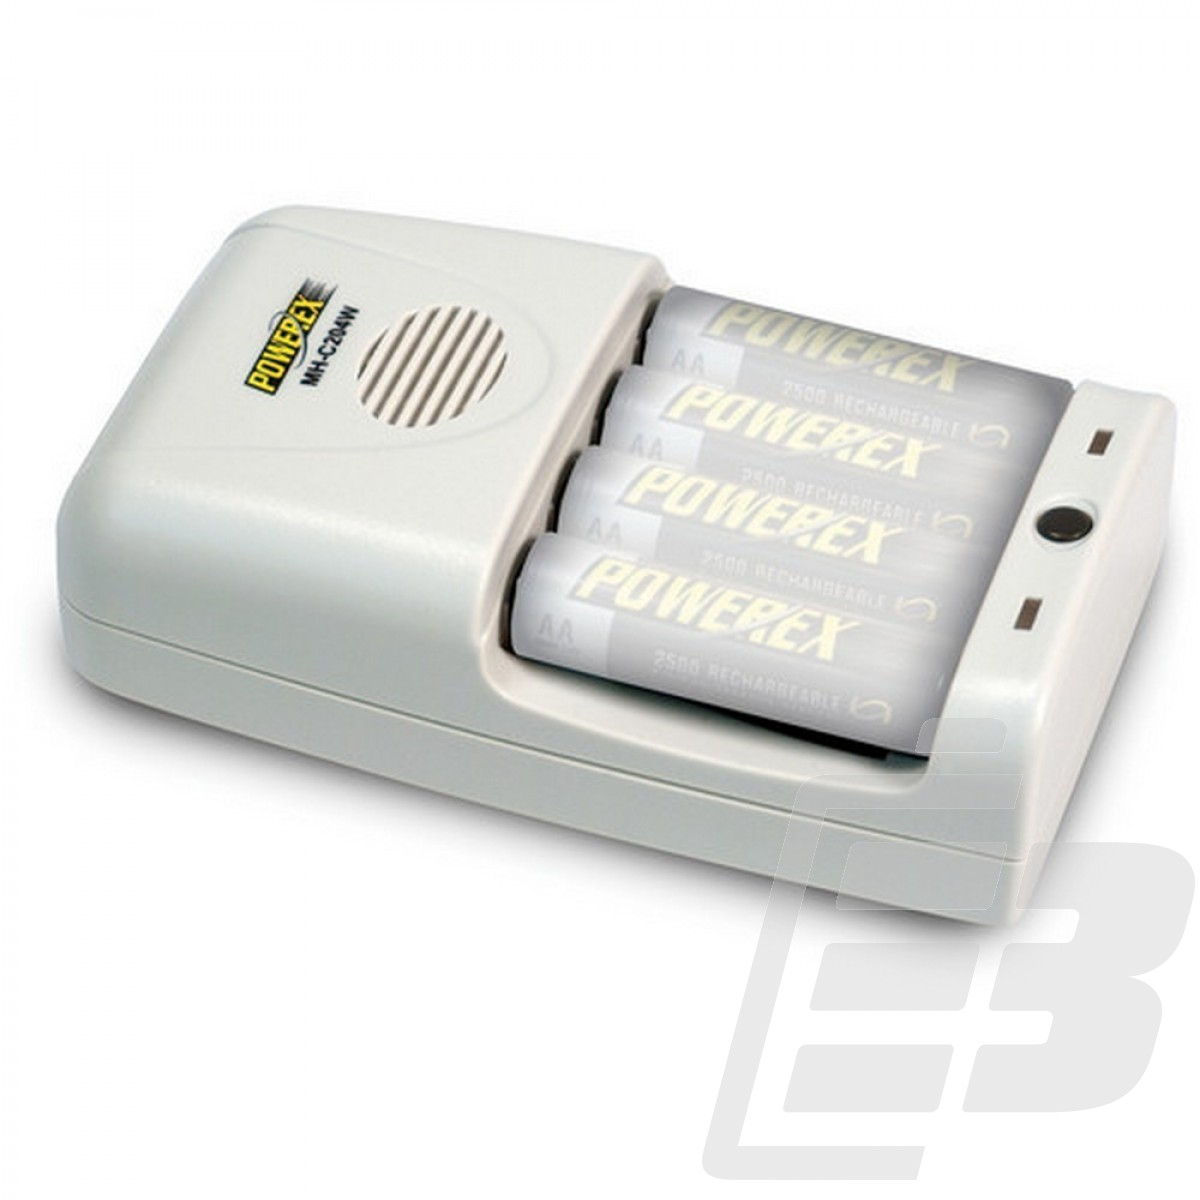 Powerex MH-C204W Charger 1